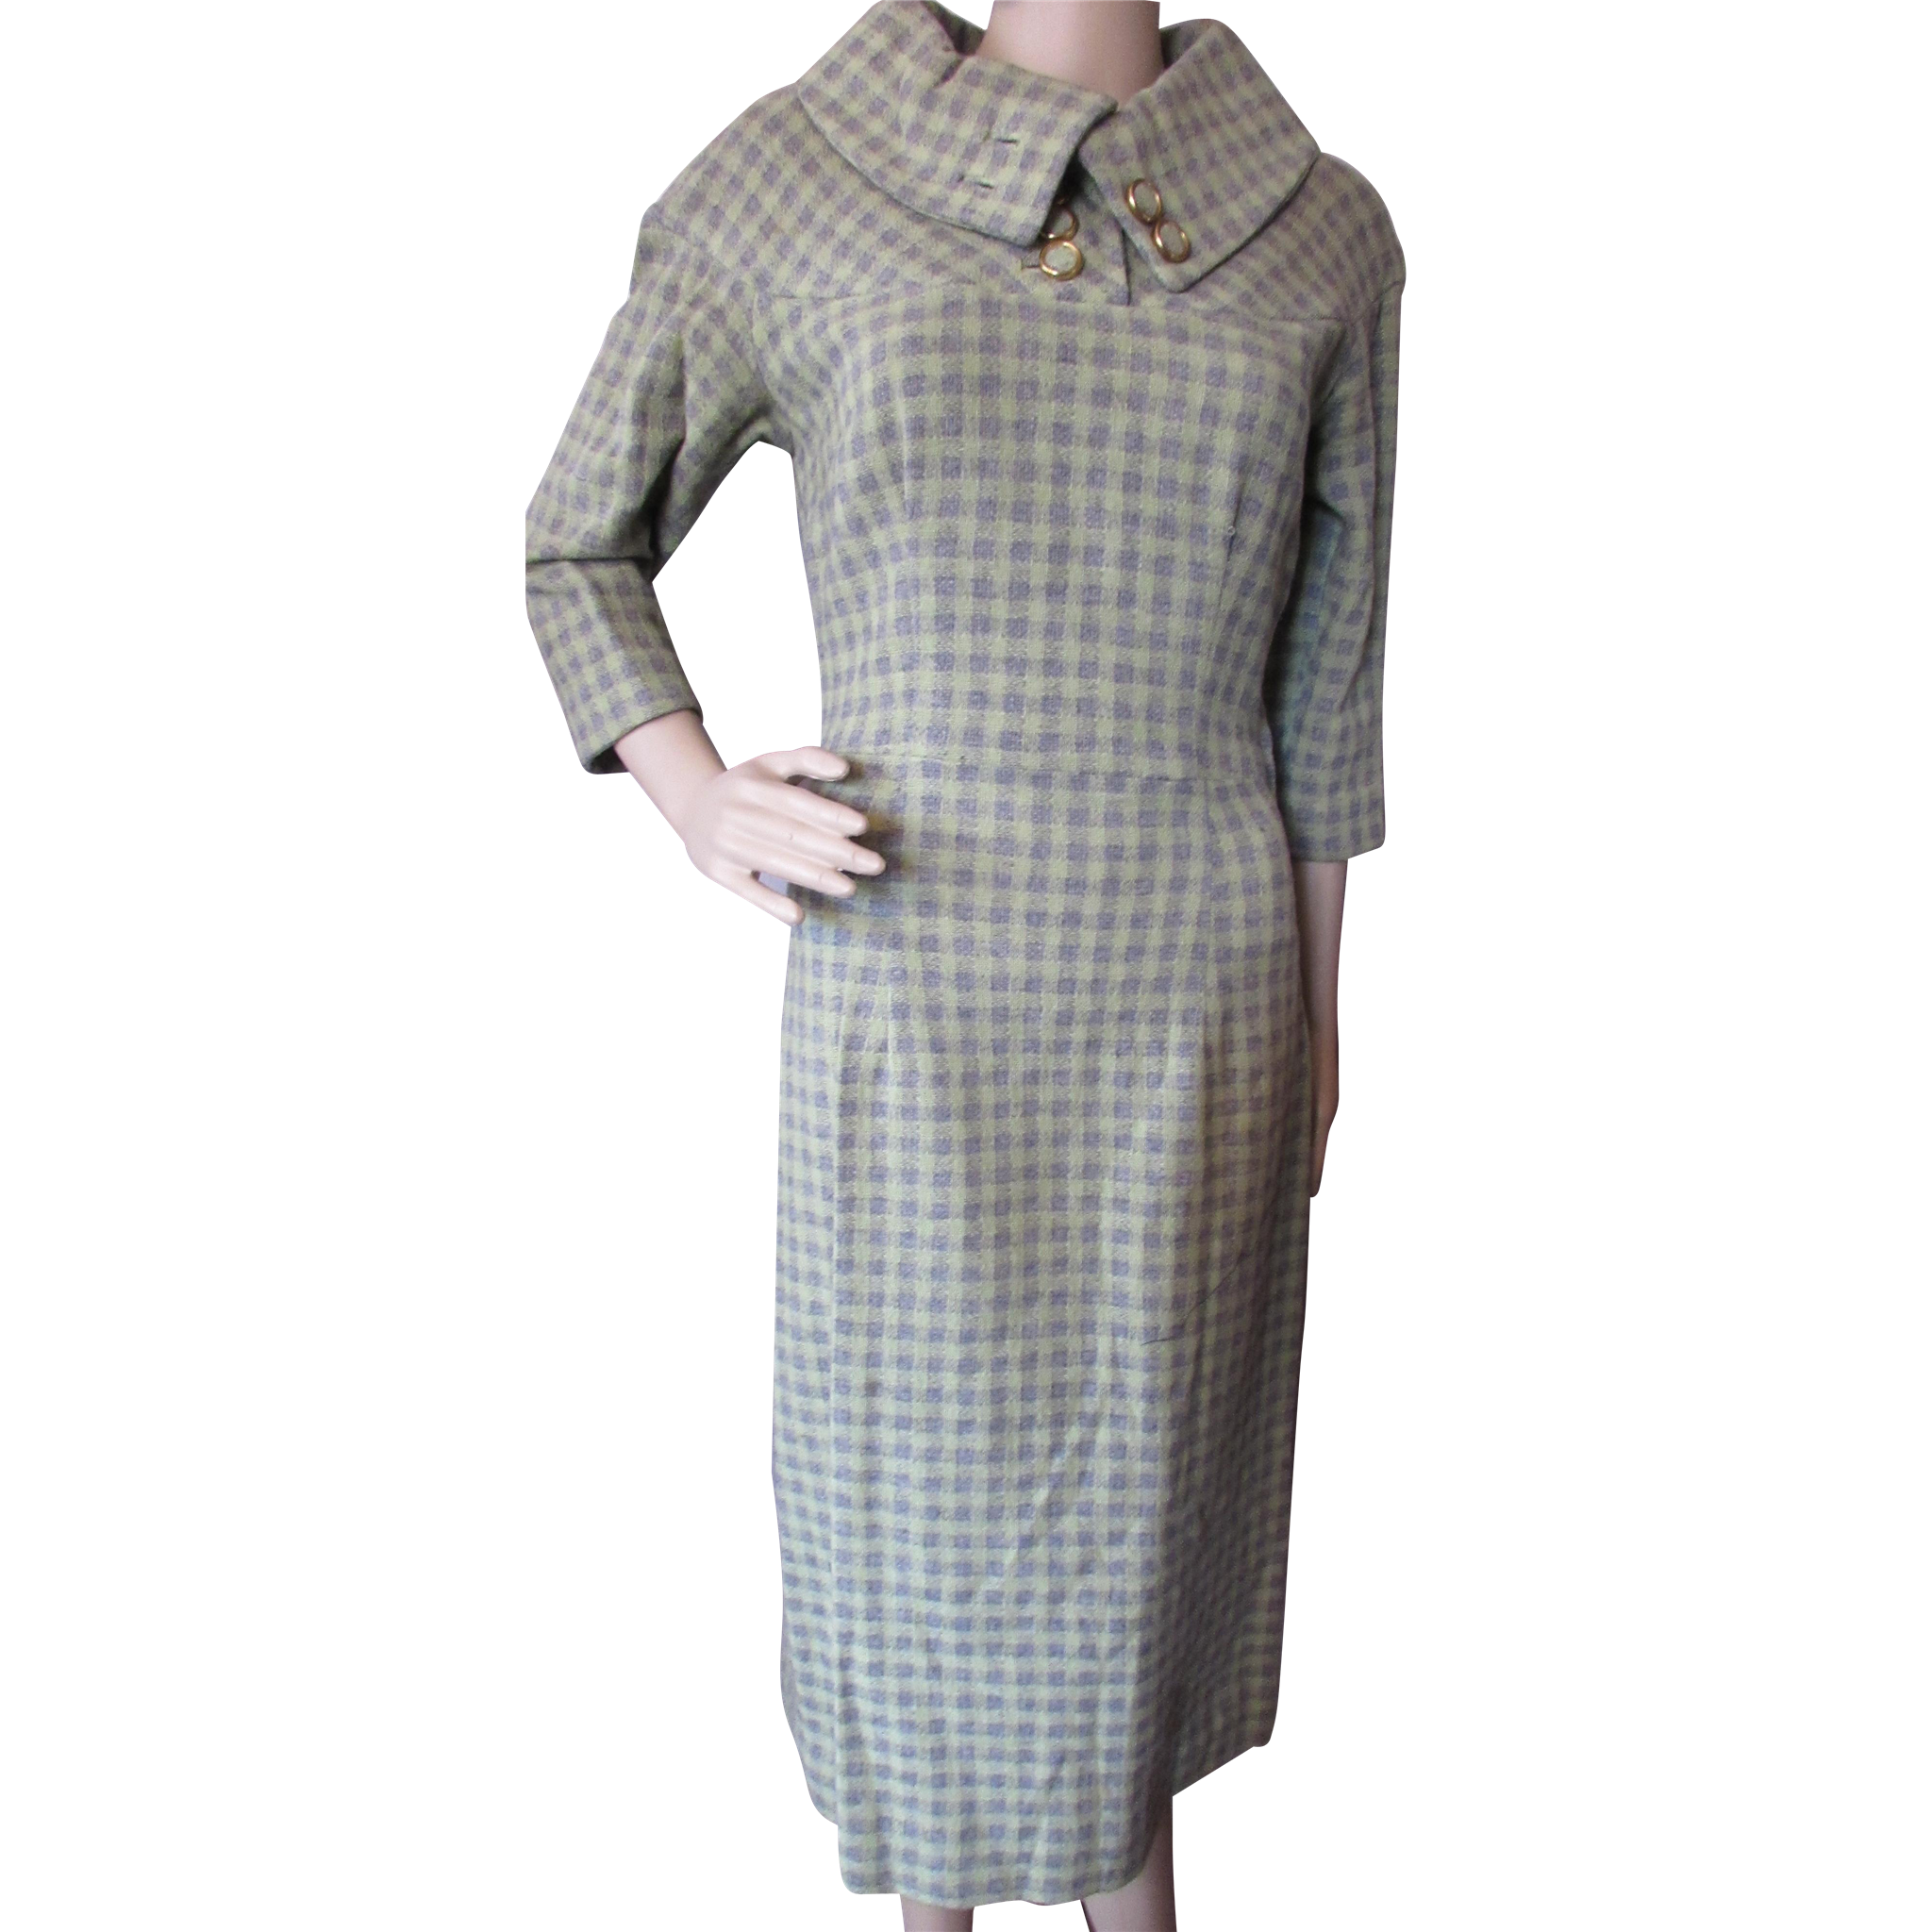 1960 Era Office Dress in Gray and Sage Plaid Wool with Cowl Neck Size Small